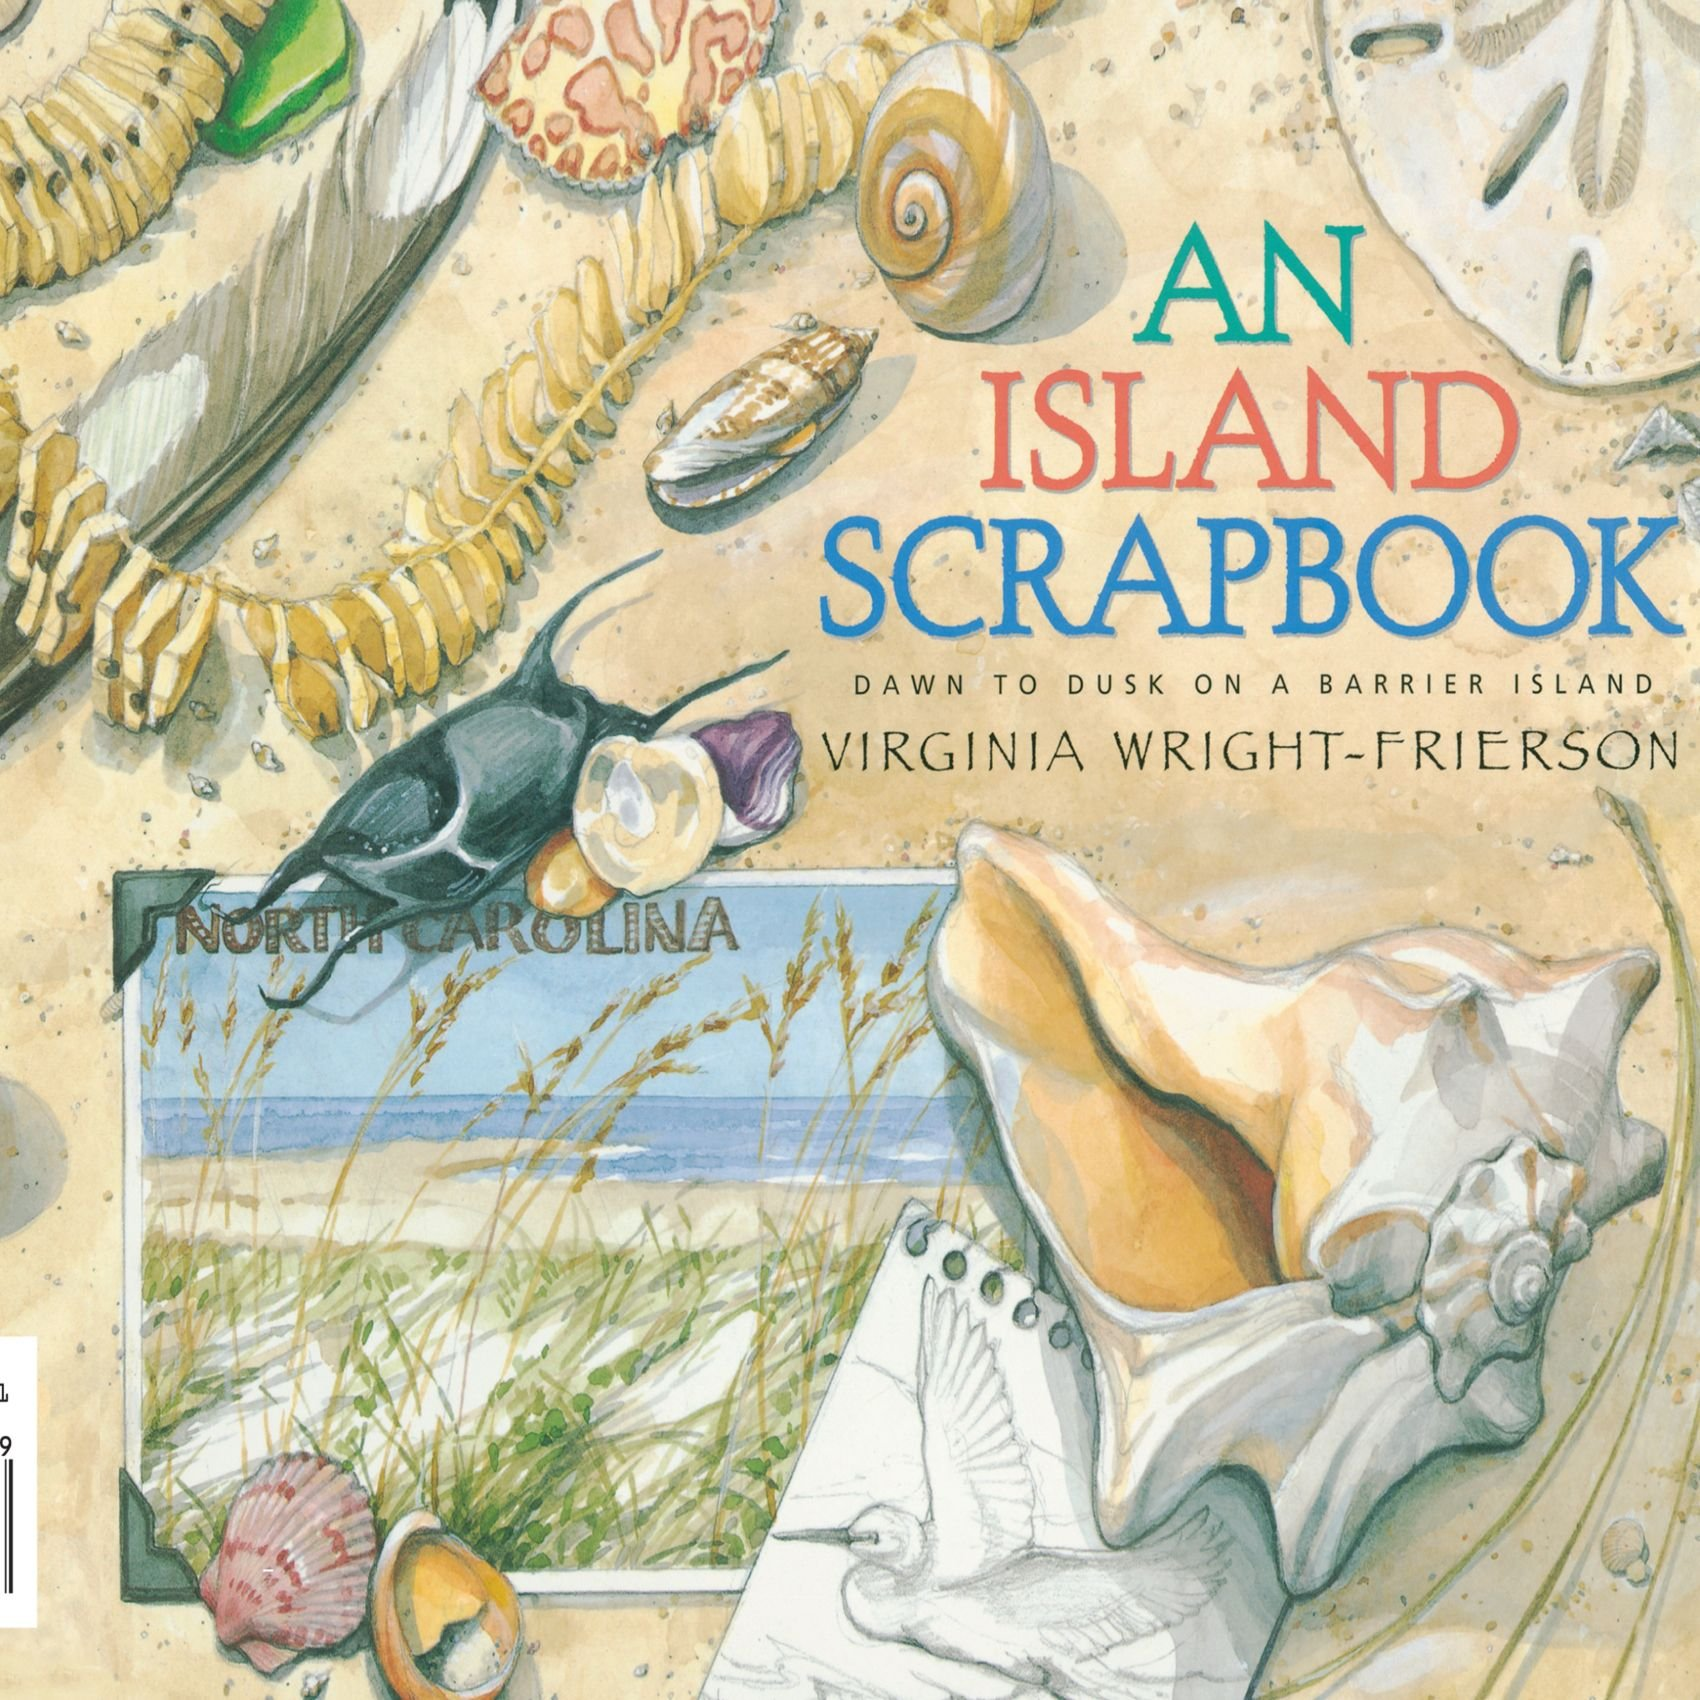 An Island Scrapbook: Dawn to Dusk on a Barrier Island